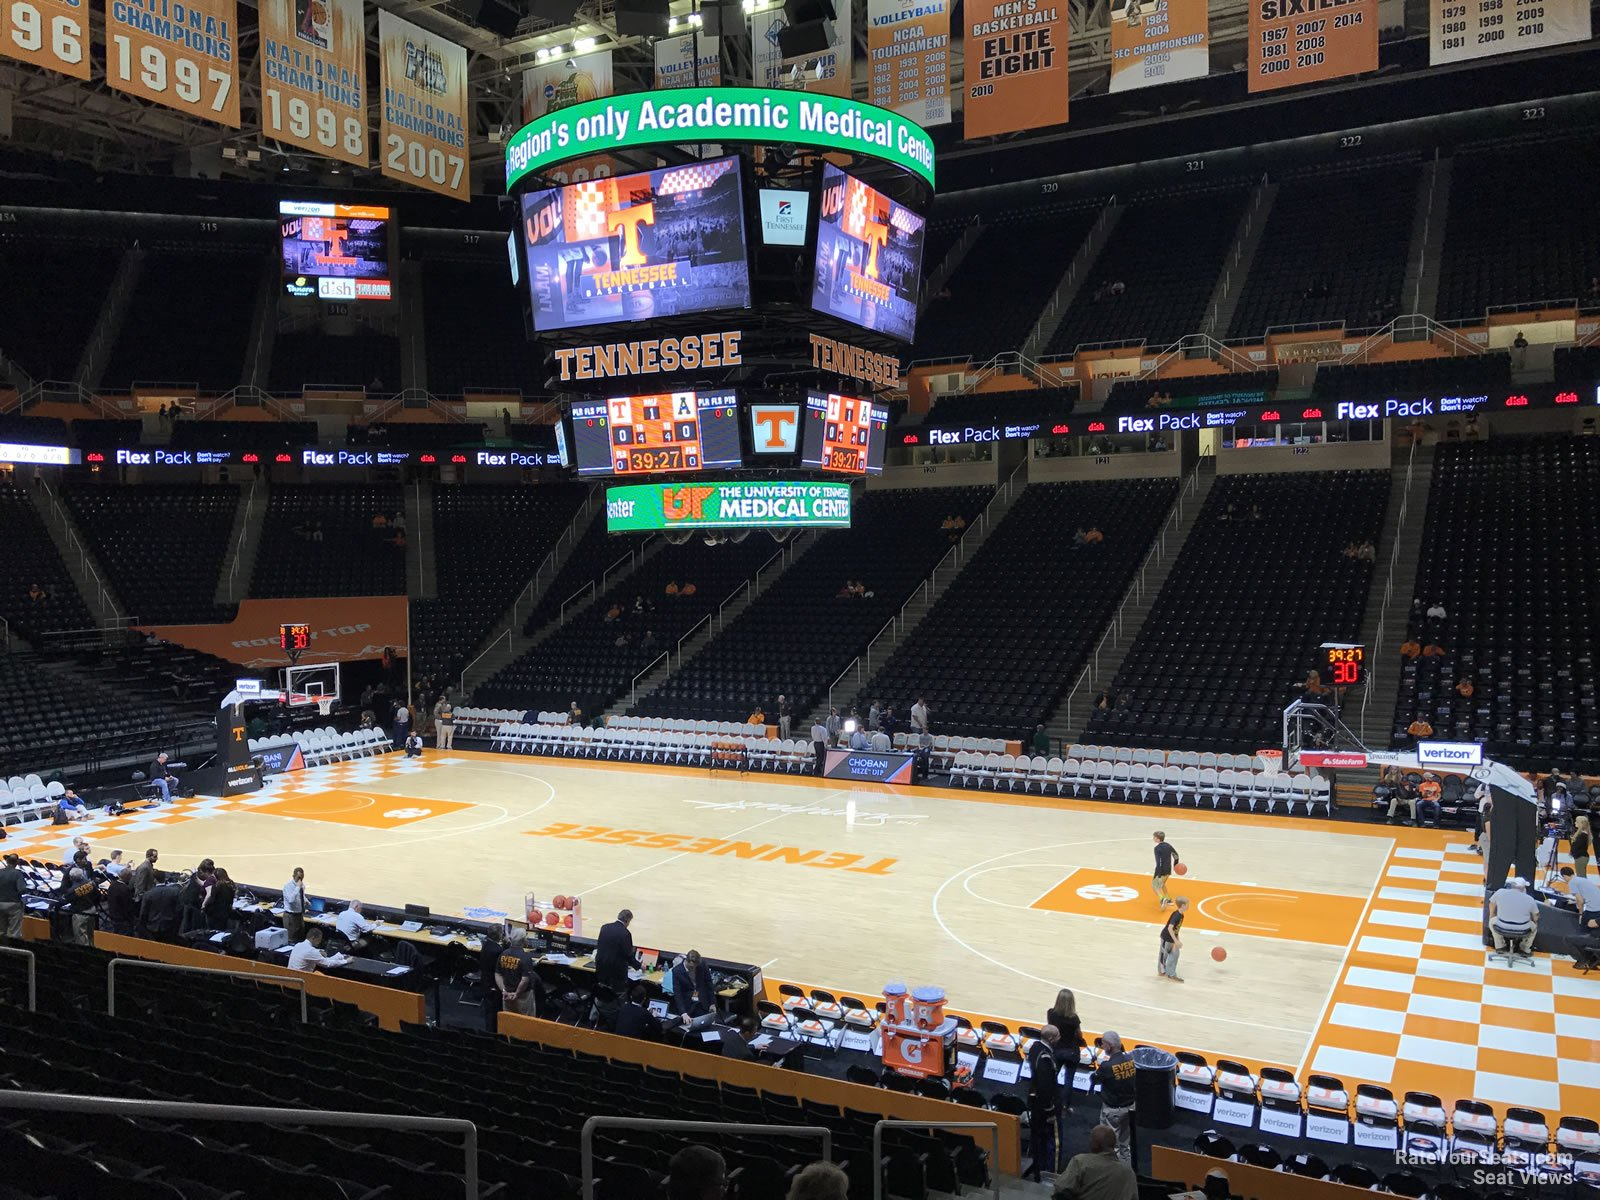 Section 103 at Thompson-Boling Arena - RateYourSeats.com